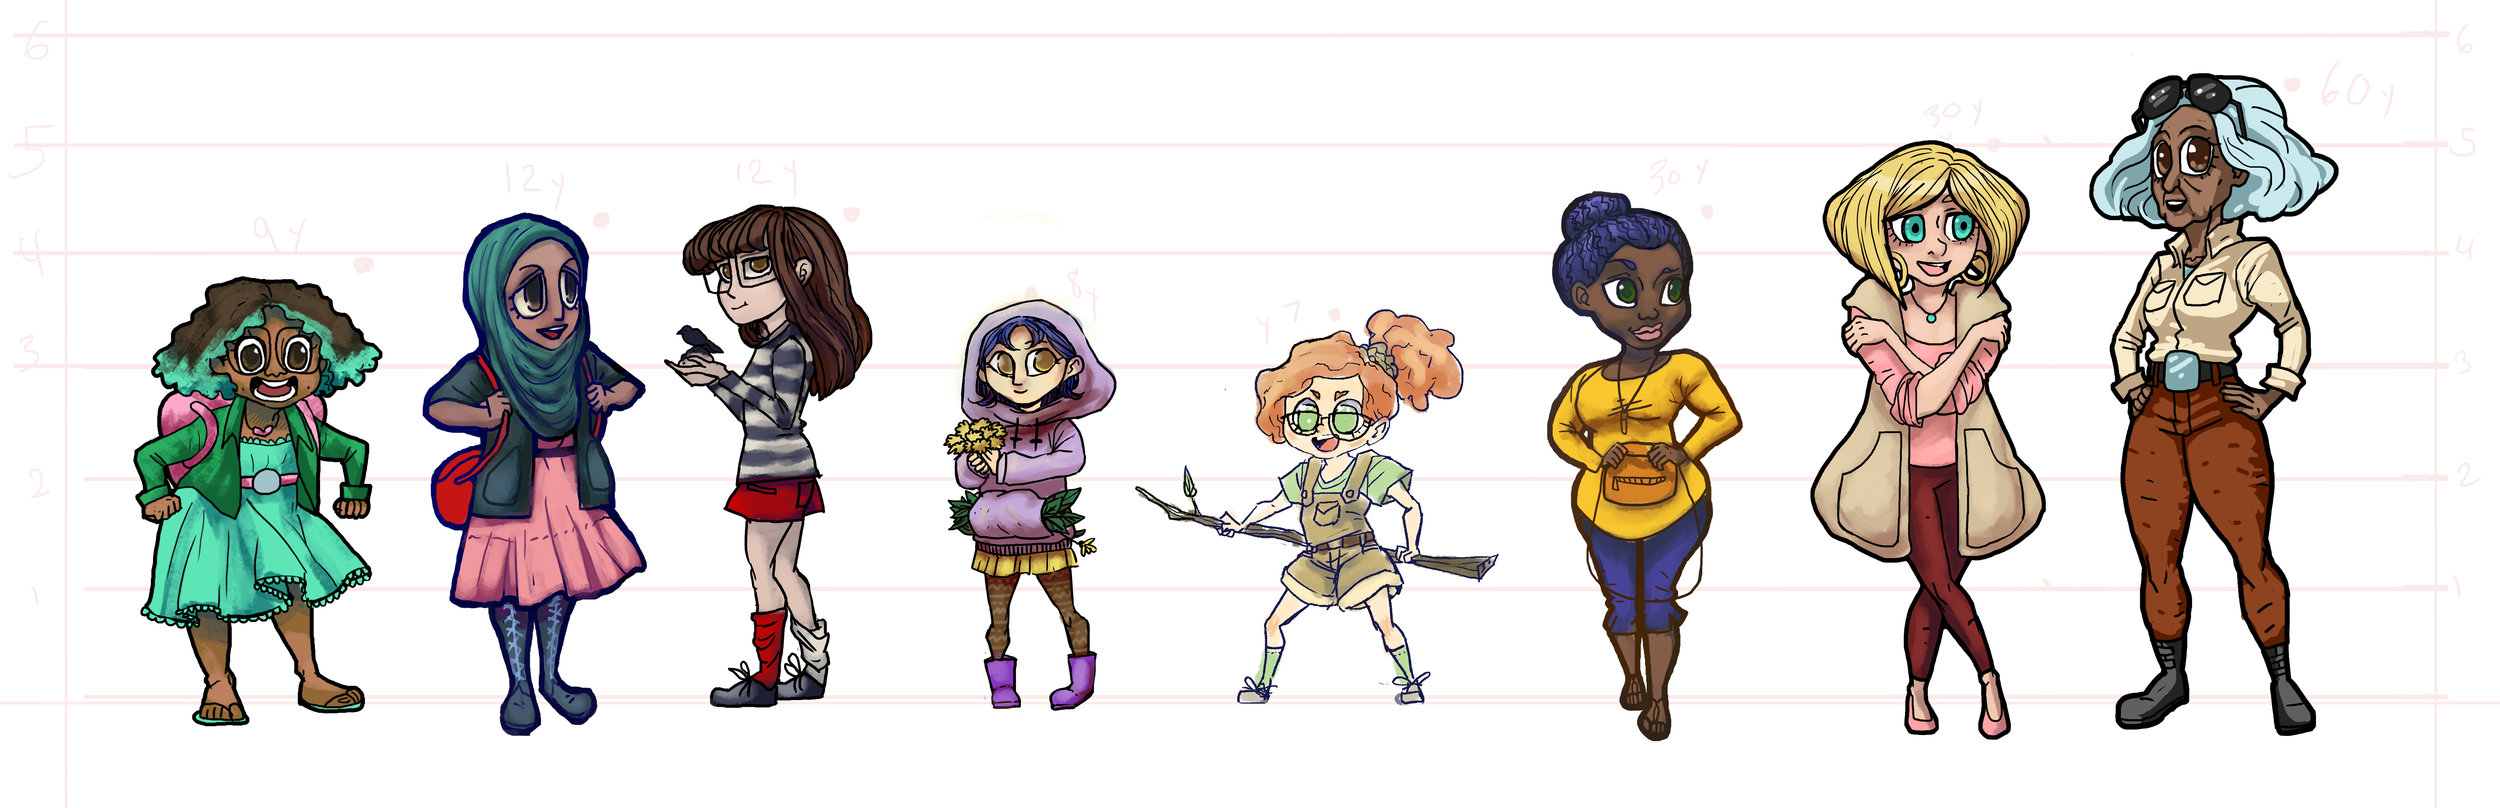 CharacterConcepts_LineUp_Females_v1_JessicaGreving.jpg